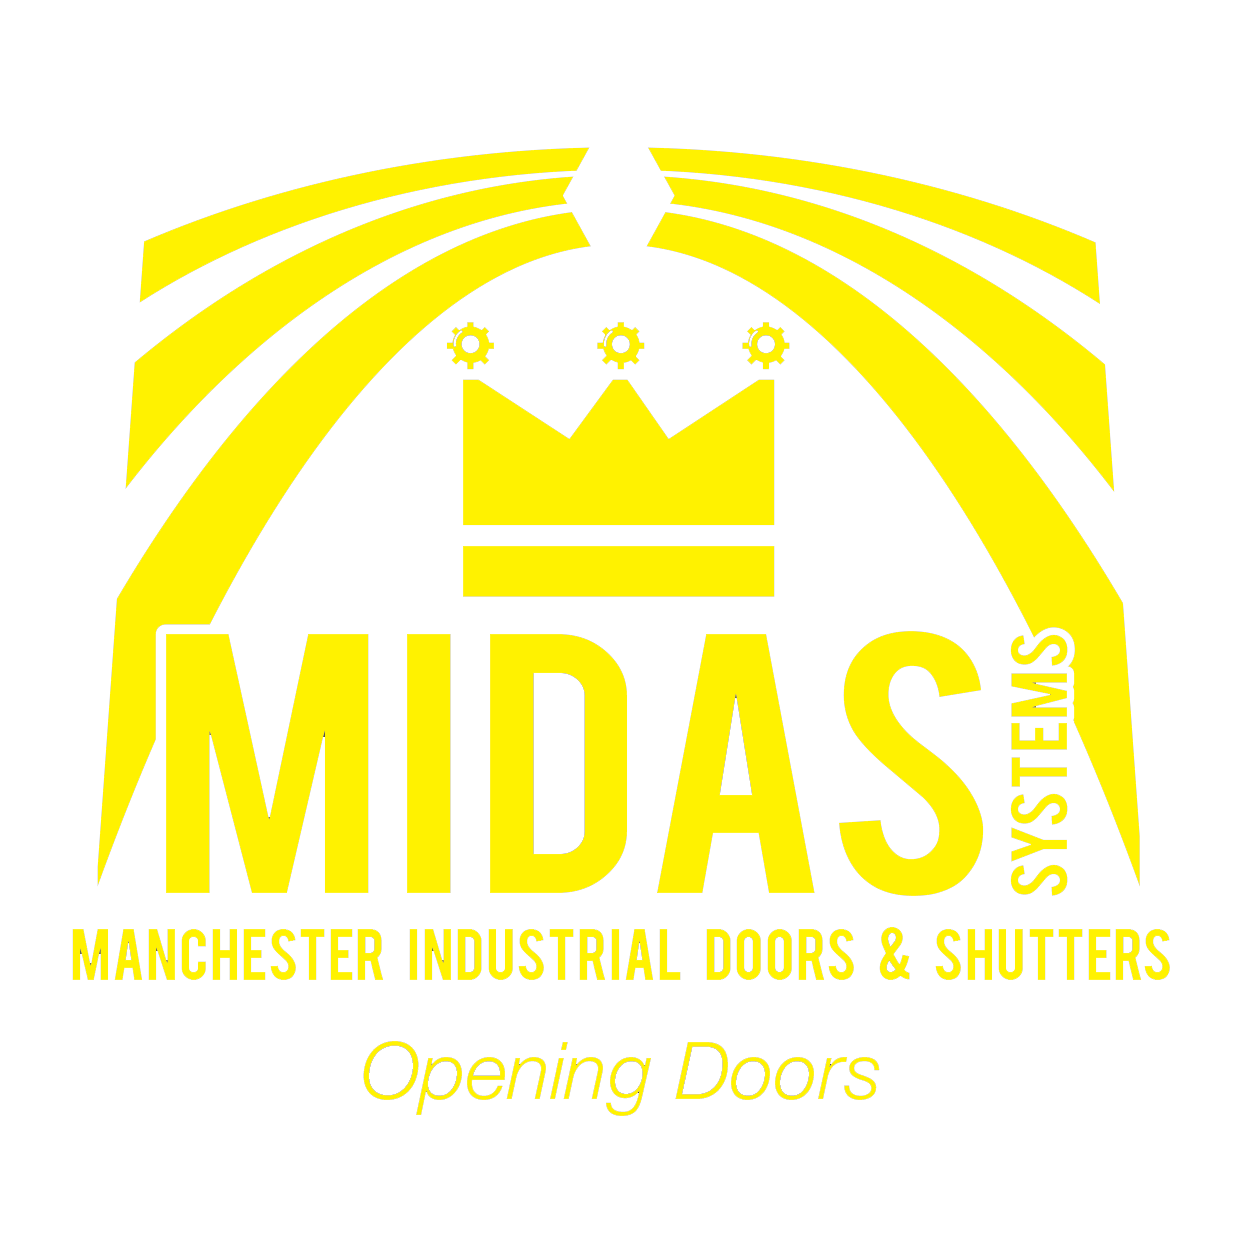 MIDAS - Manchester Industrial Doors and Shutters